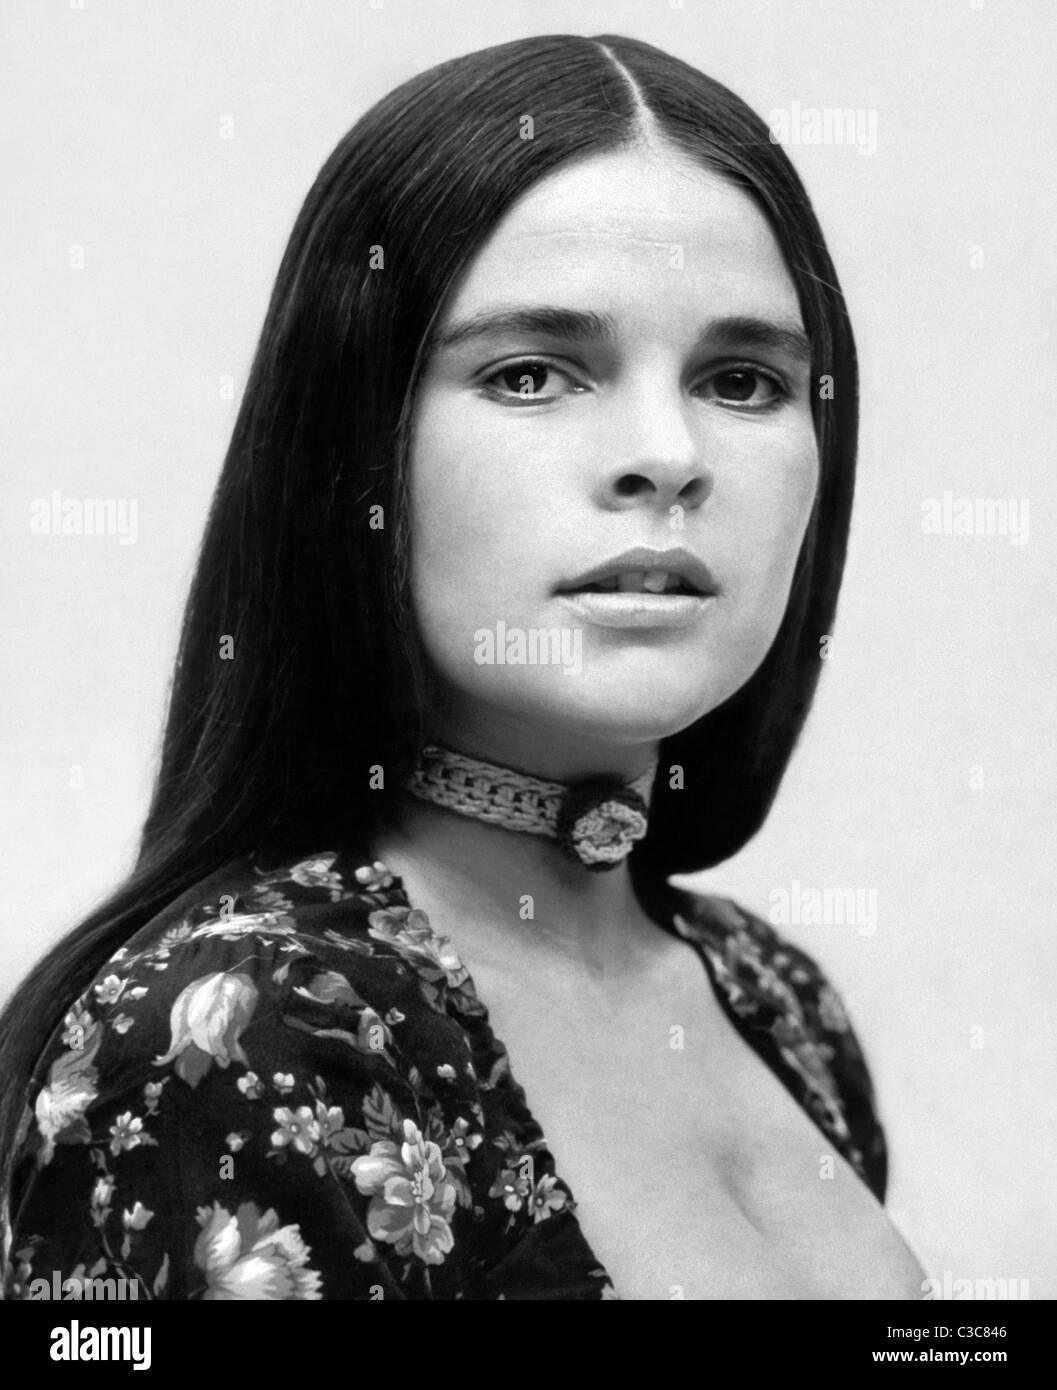 ALI MACGRAW LOVE STORY (1970) - Stock Image